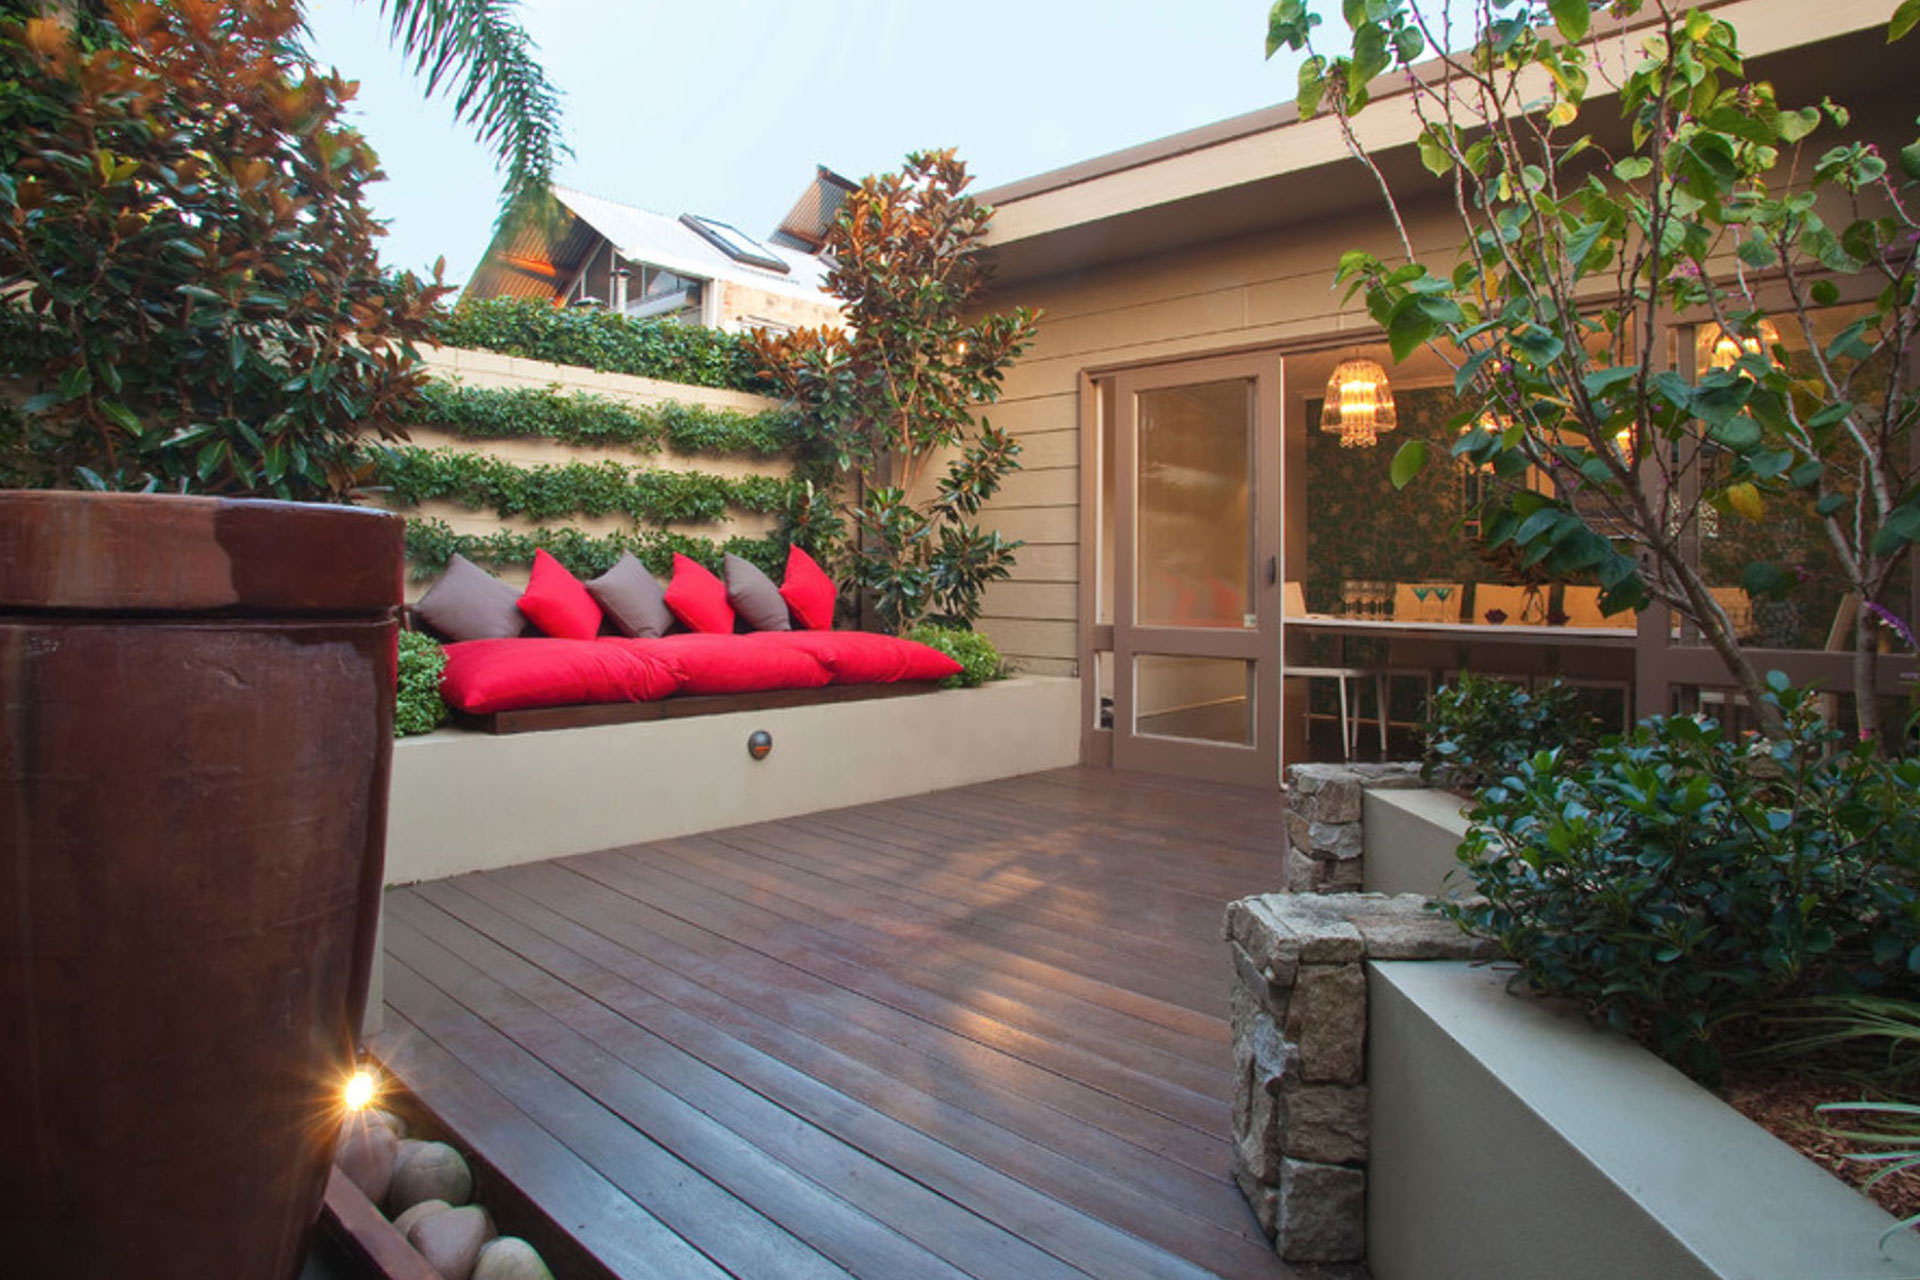 5 Ideas For Making A Big Impact In Small Outdoor Space